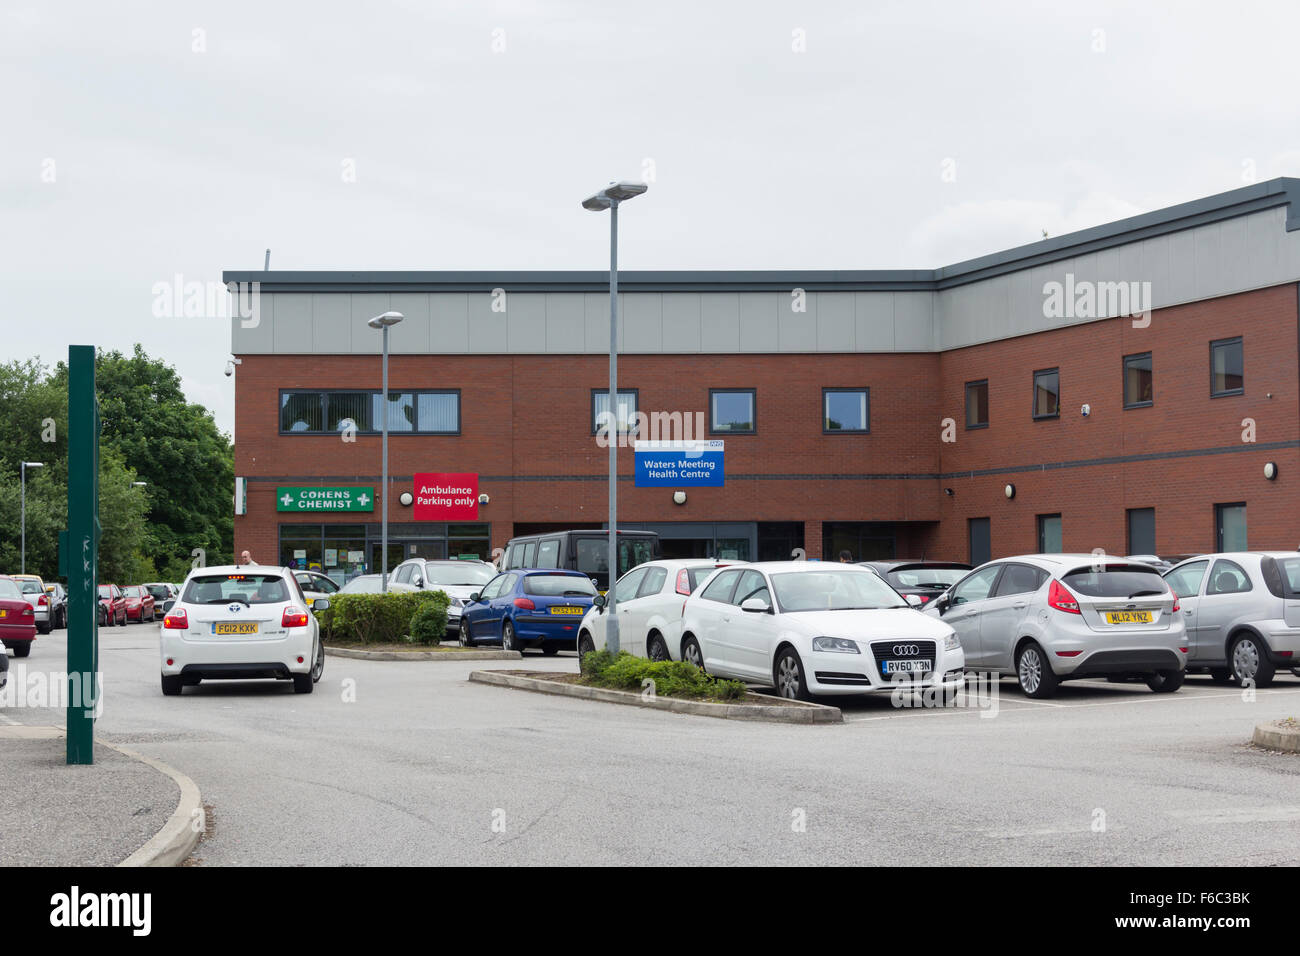 Waters Meeting Health Centre, Astley Bridge, Bolton. A National Health Service (NHS) GP surgery and community health - Stock Image